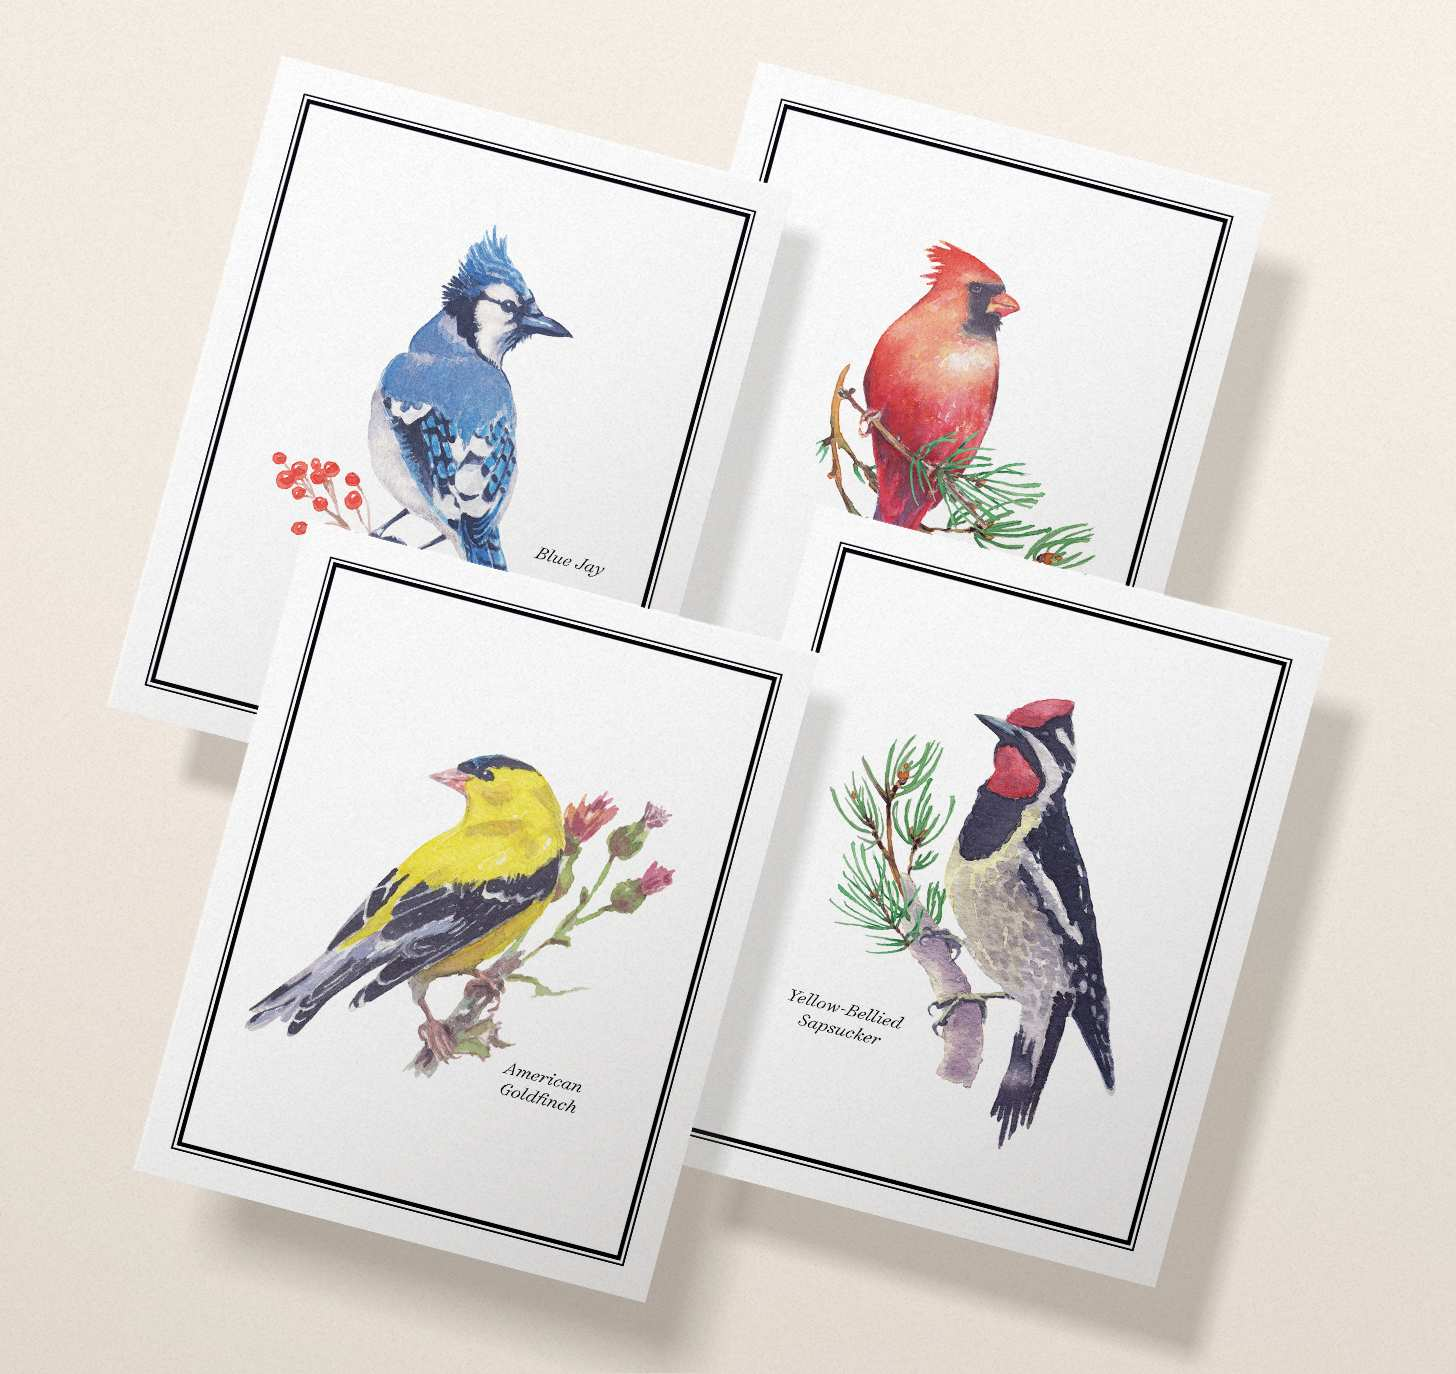 Four overlapping cards with goldfinch, sapsucker, blue jay, and robin designs